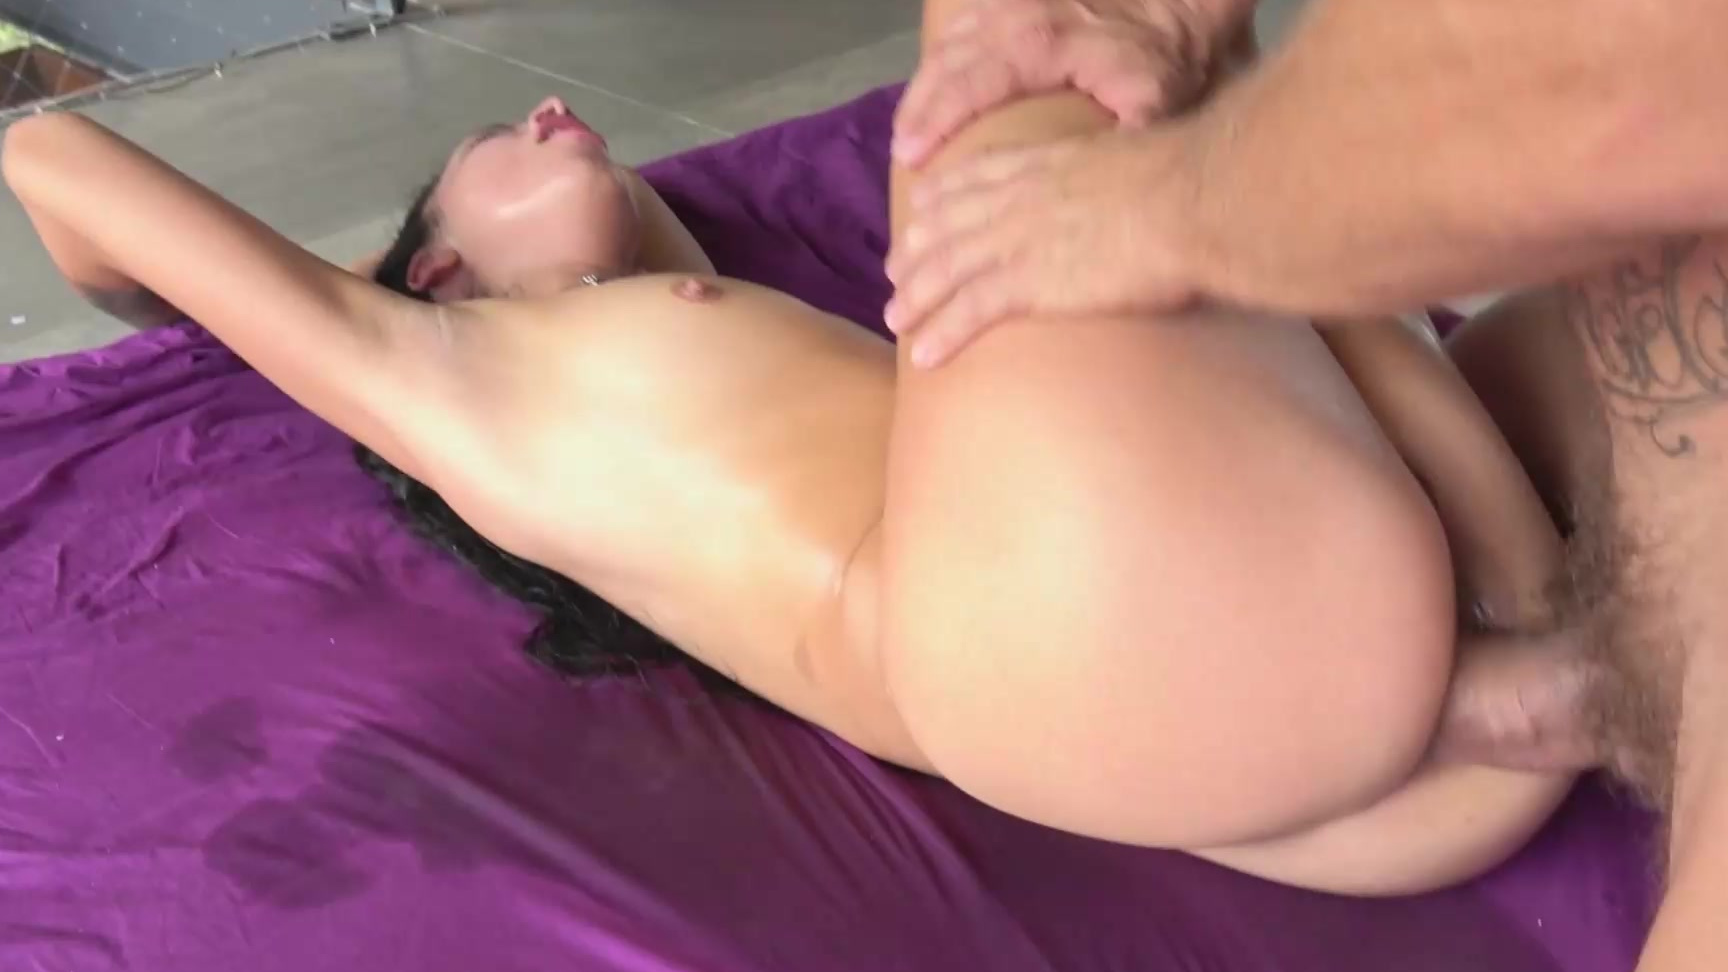 Fucked Her While Her Man Work